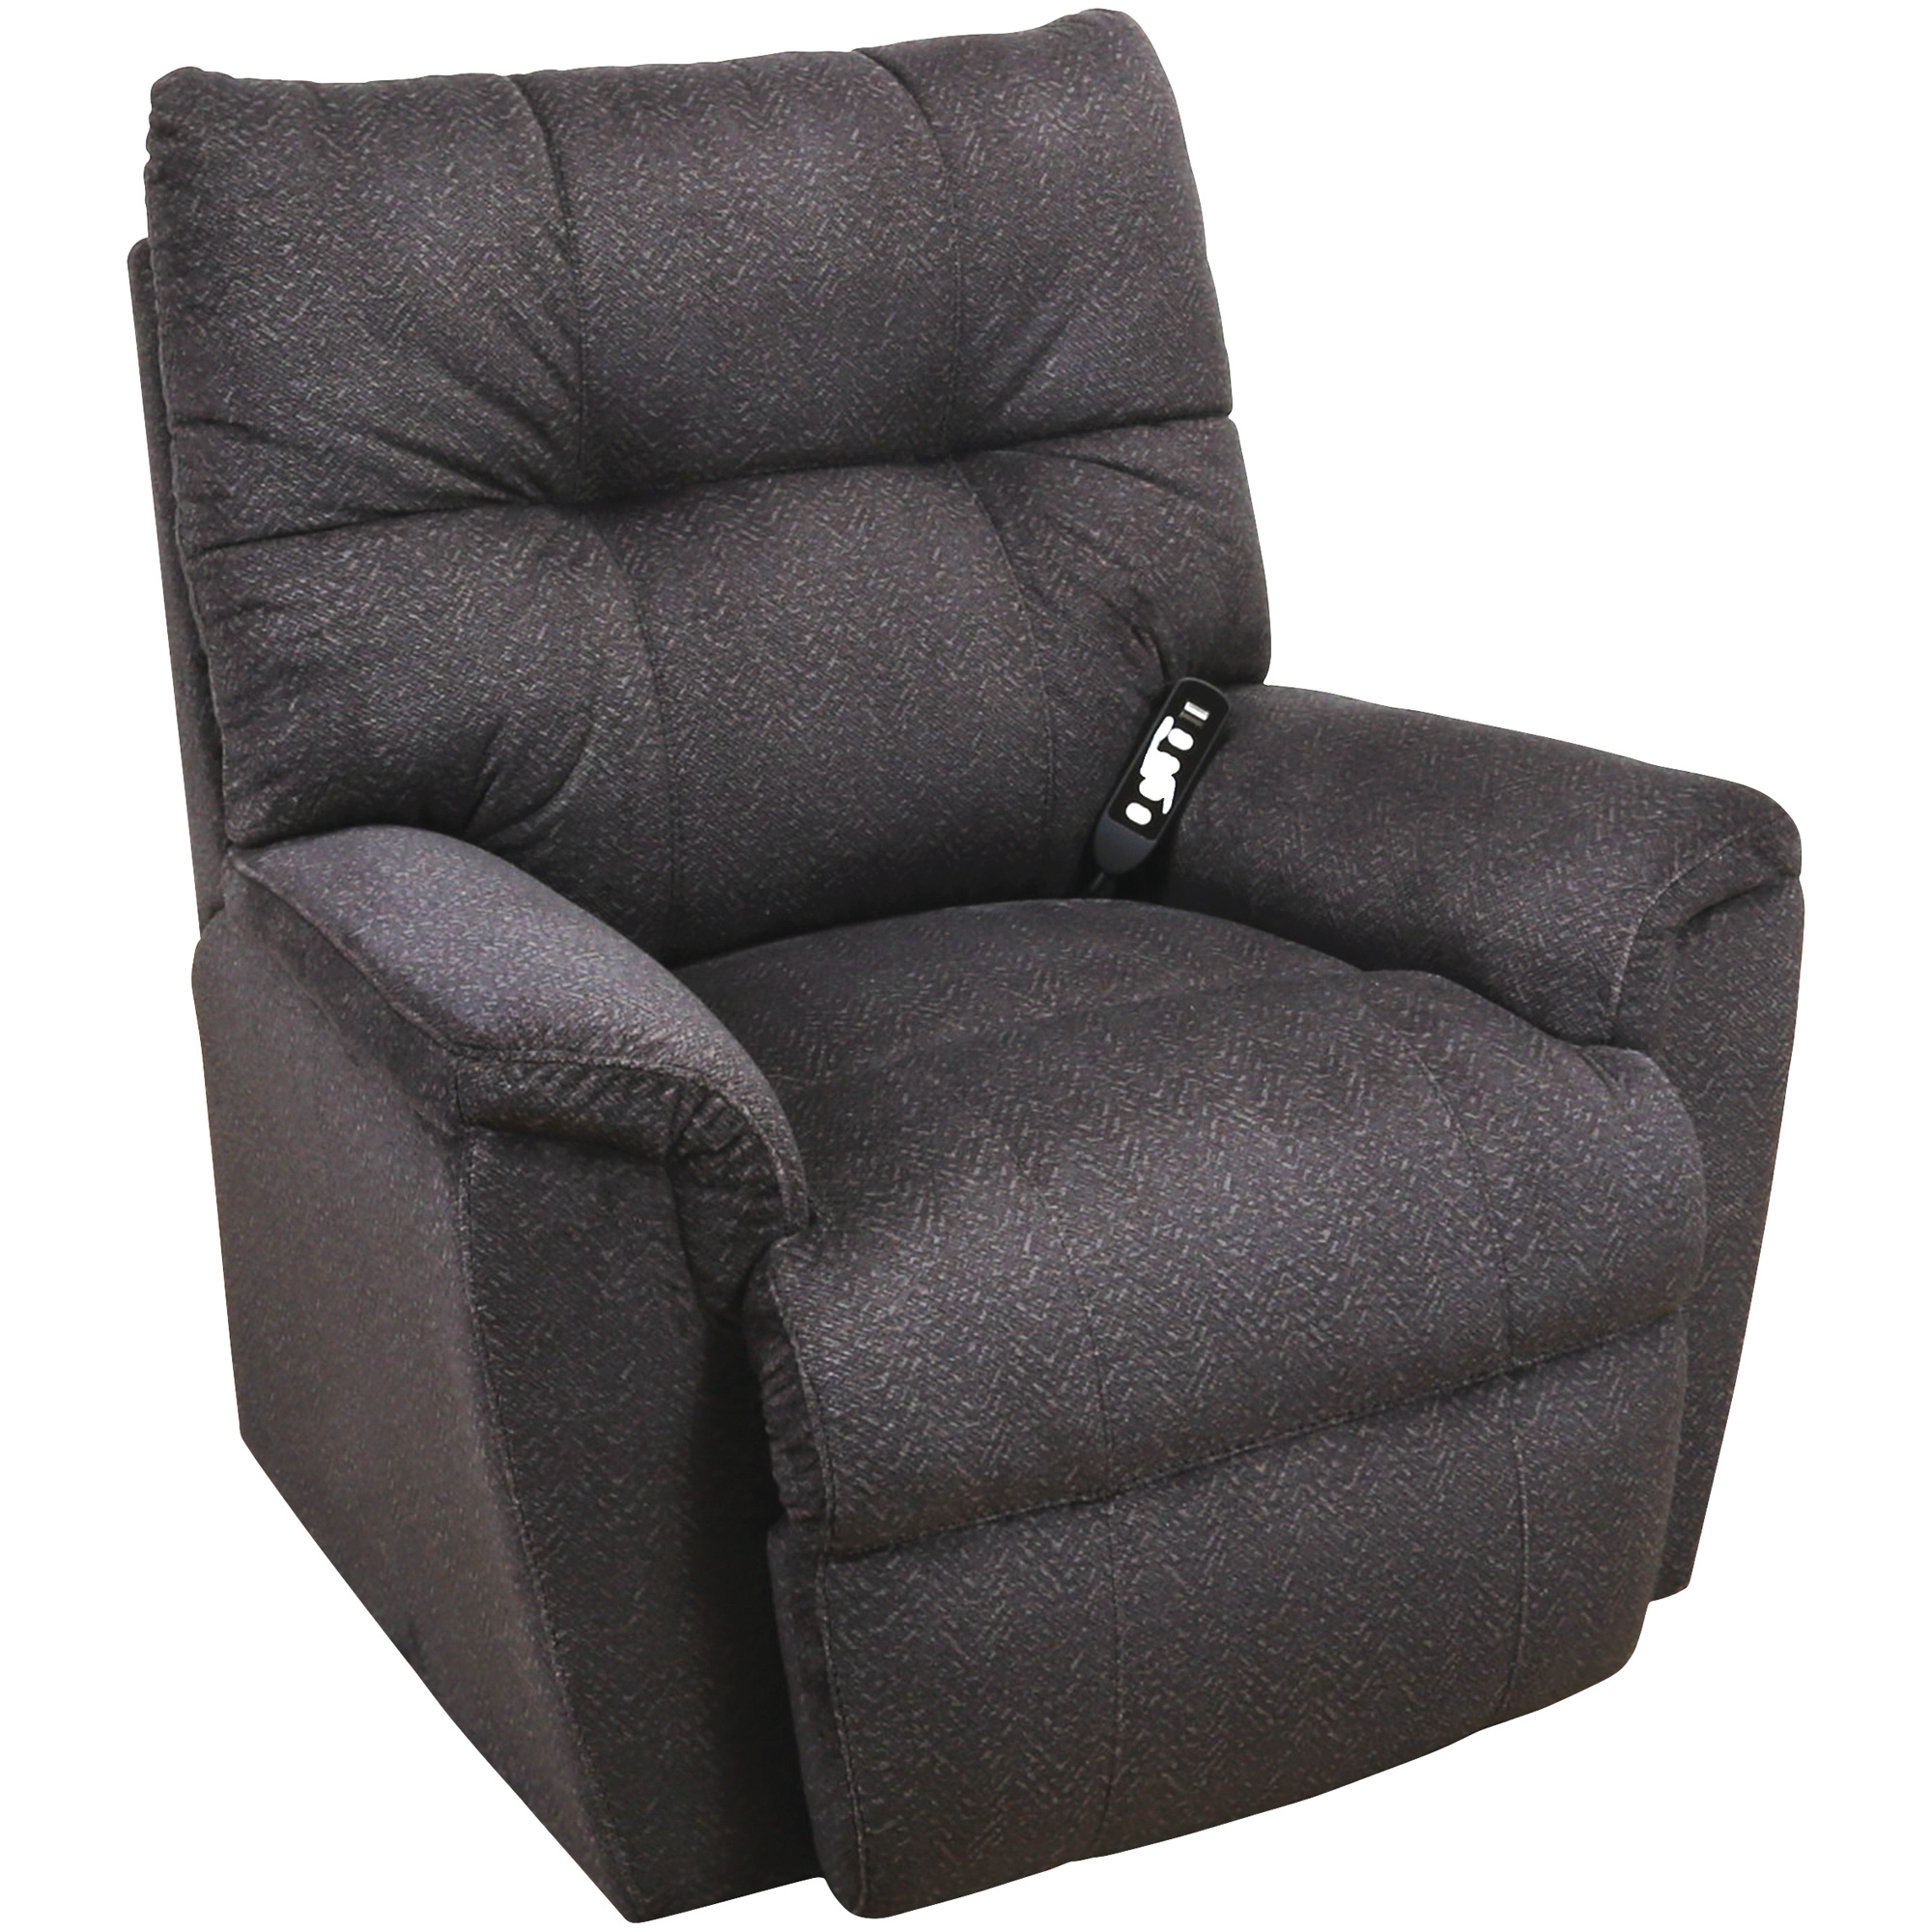 Does Medicare Cover Lift Chairs Slumberland Furniture Onyx Saddle Lift Recliner